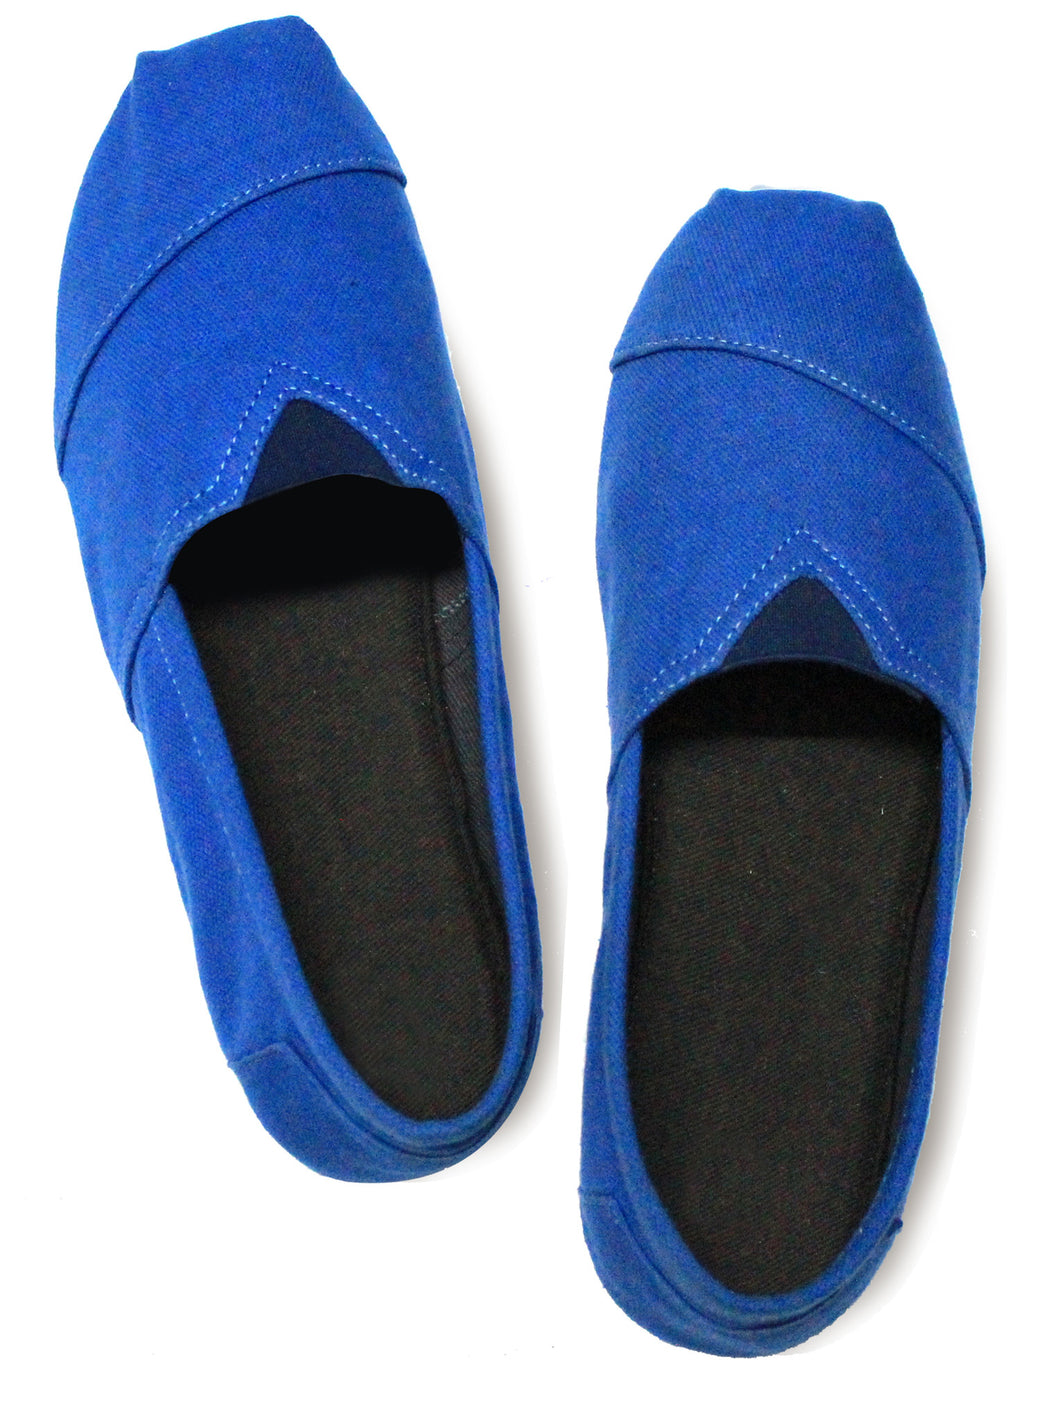 The Blue One Espadrilles for Men - Rivir Shoes